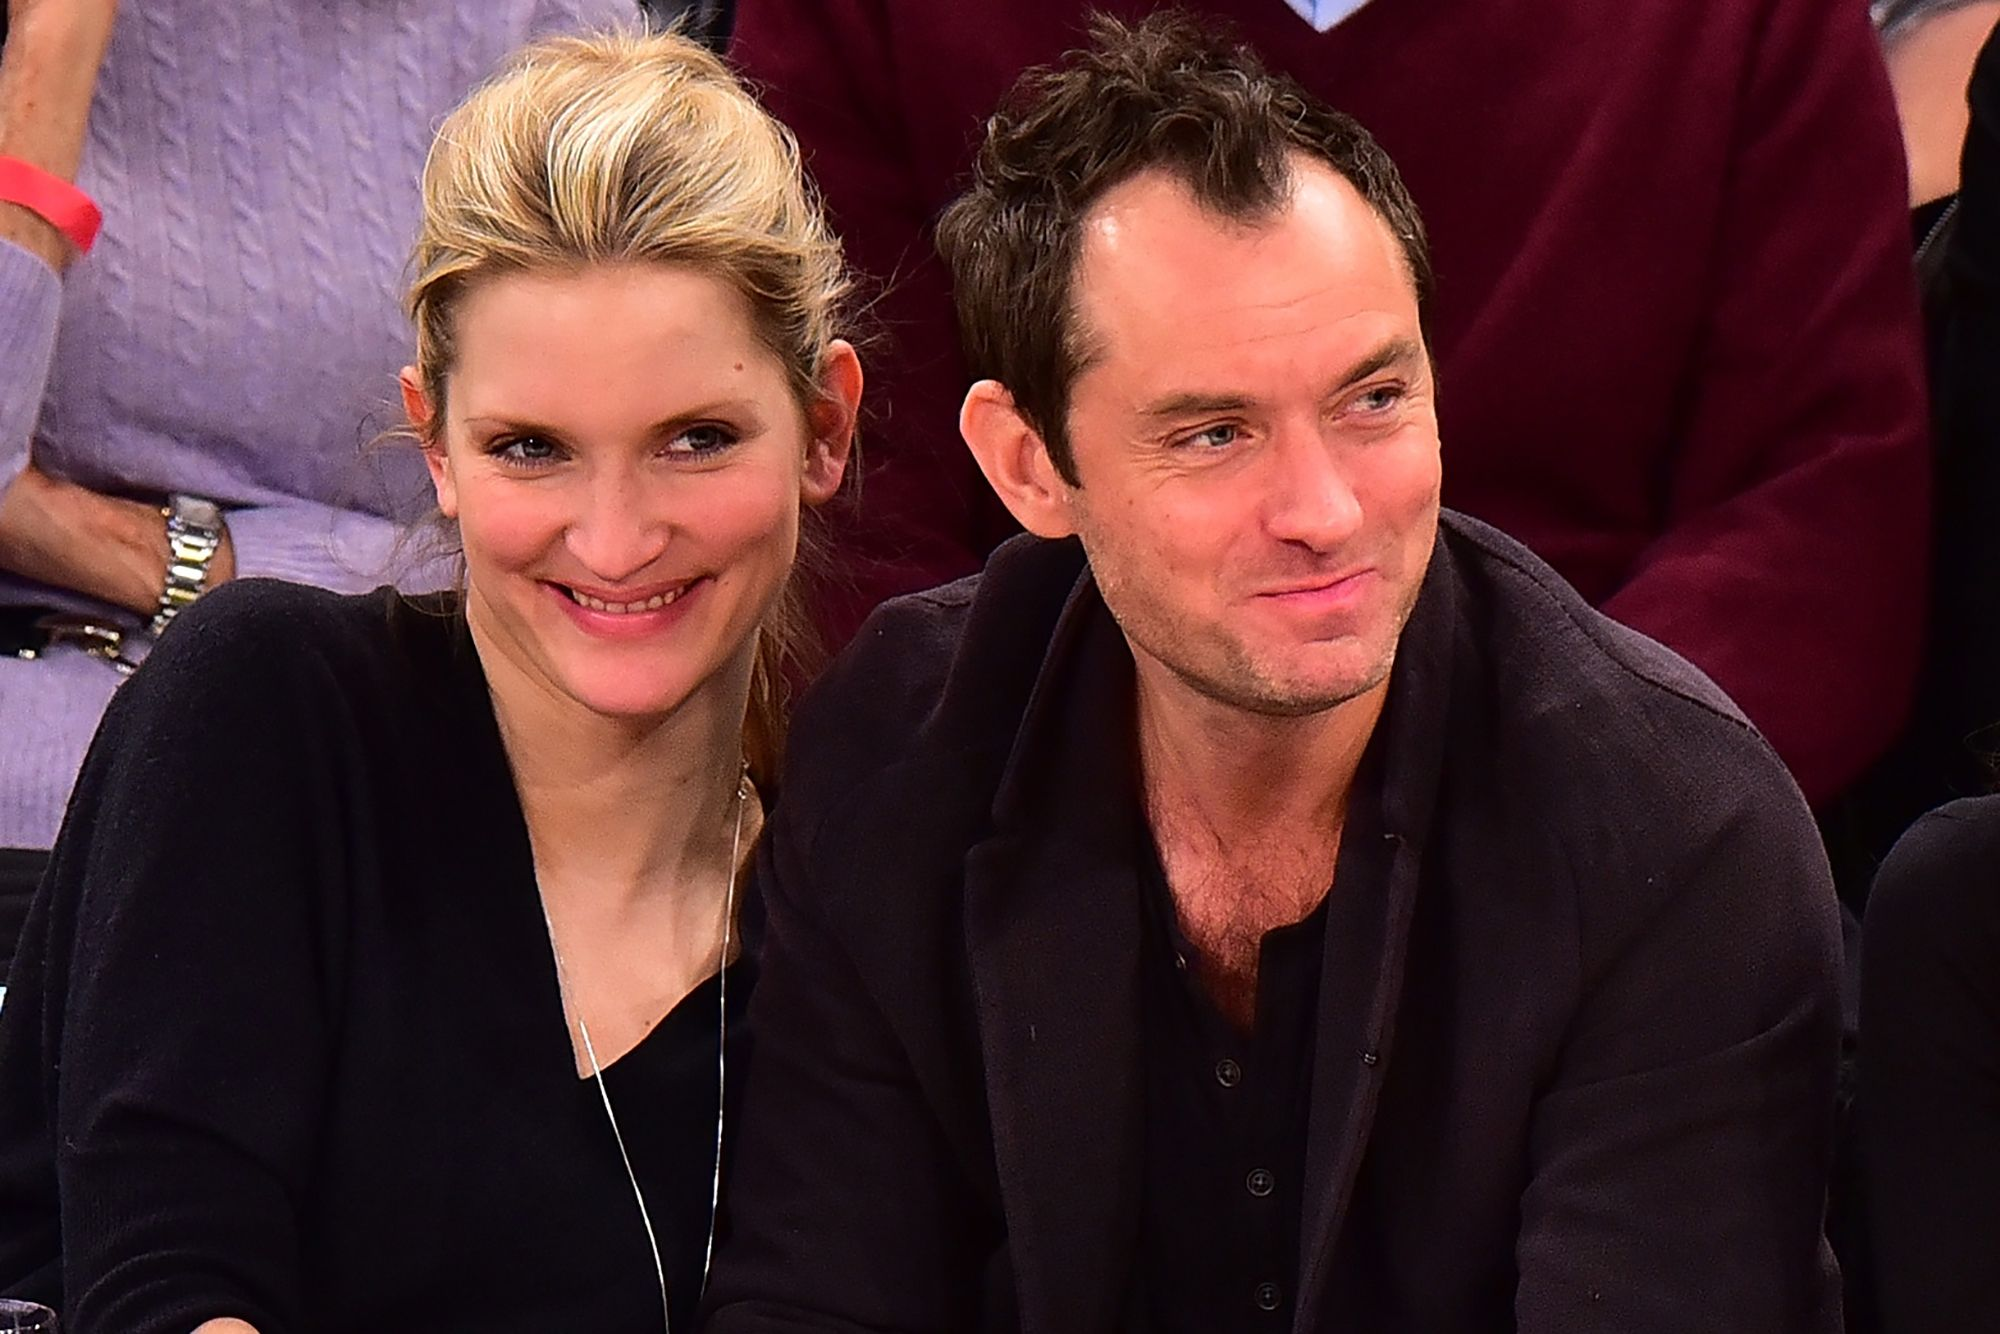 Jude Law And Phillipa Coan Welcome Their First Baby Together – The Actor Is Now A Father Of 6!